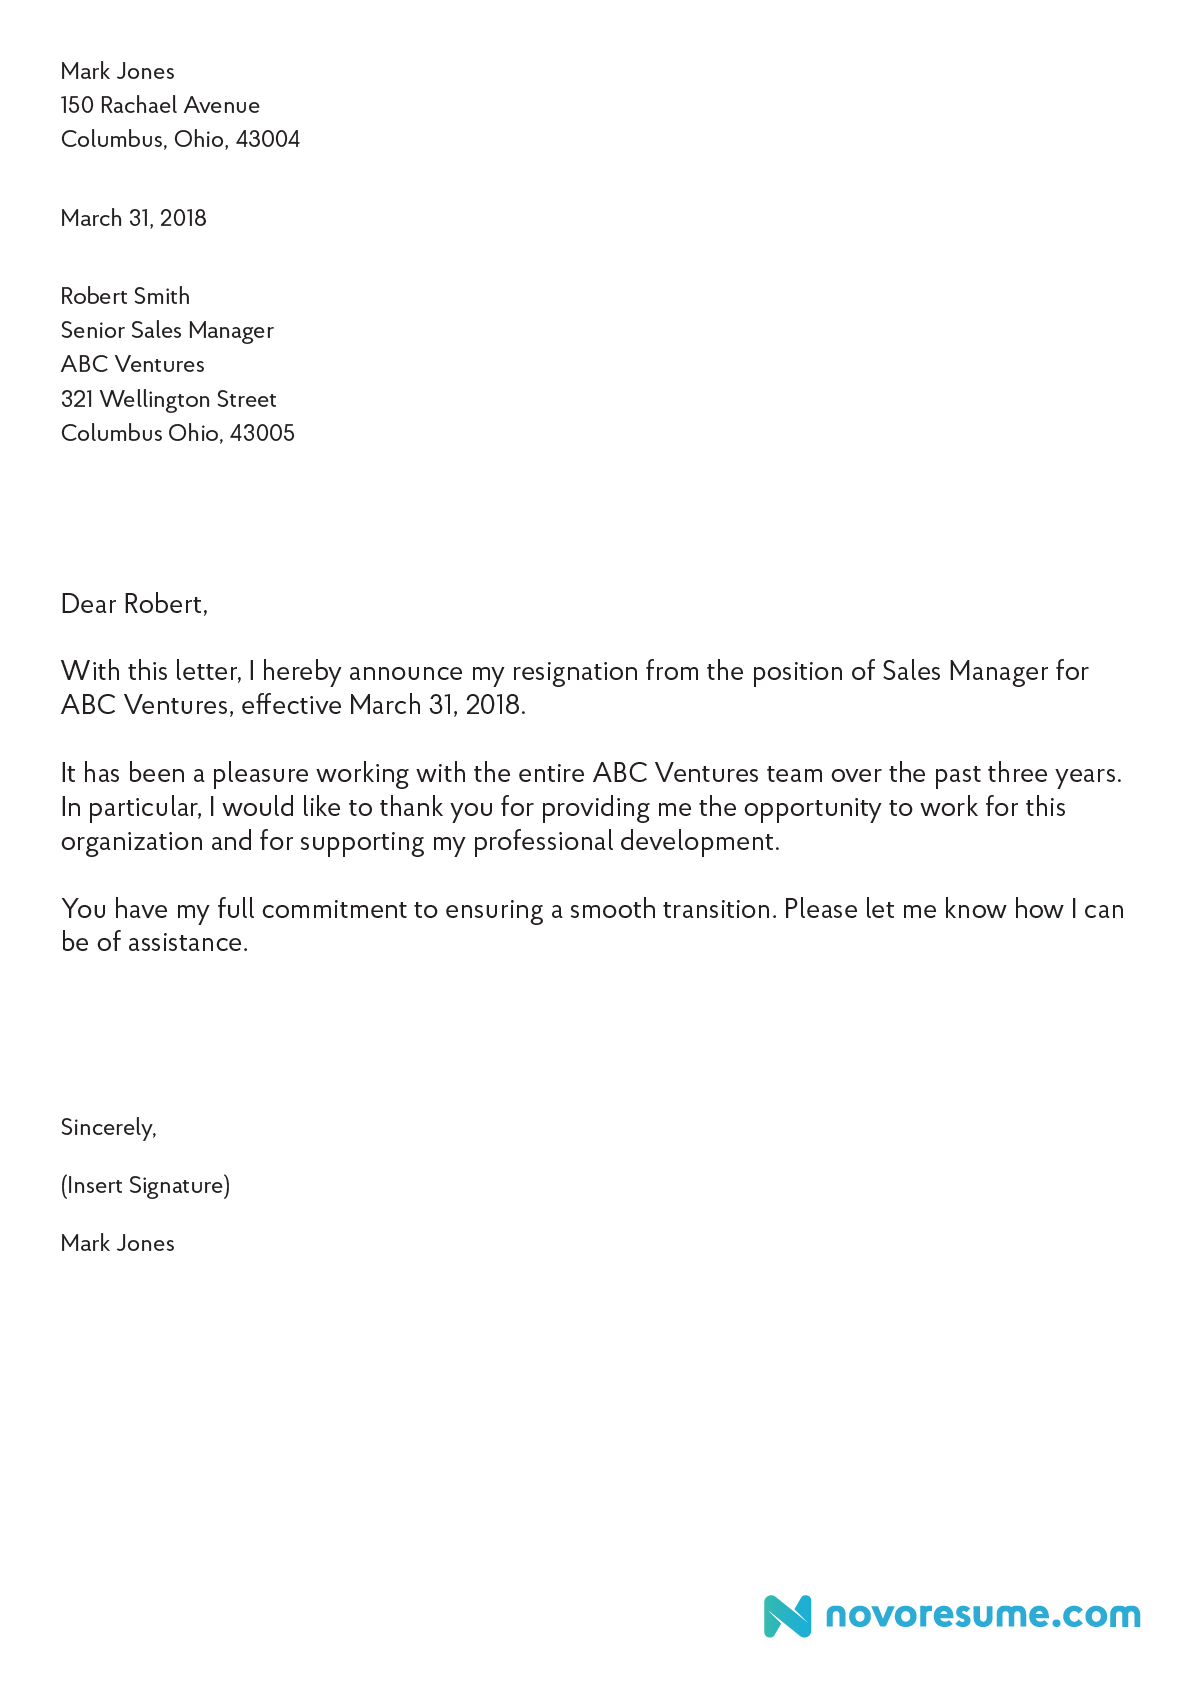 simple resignation letter sample with reason how to write a letter of resignation 2019 extensive guide 25394 | letter of resignation sample